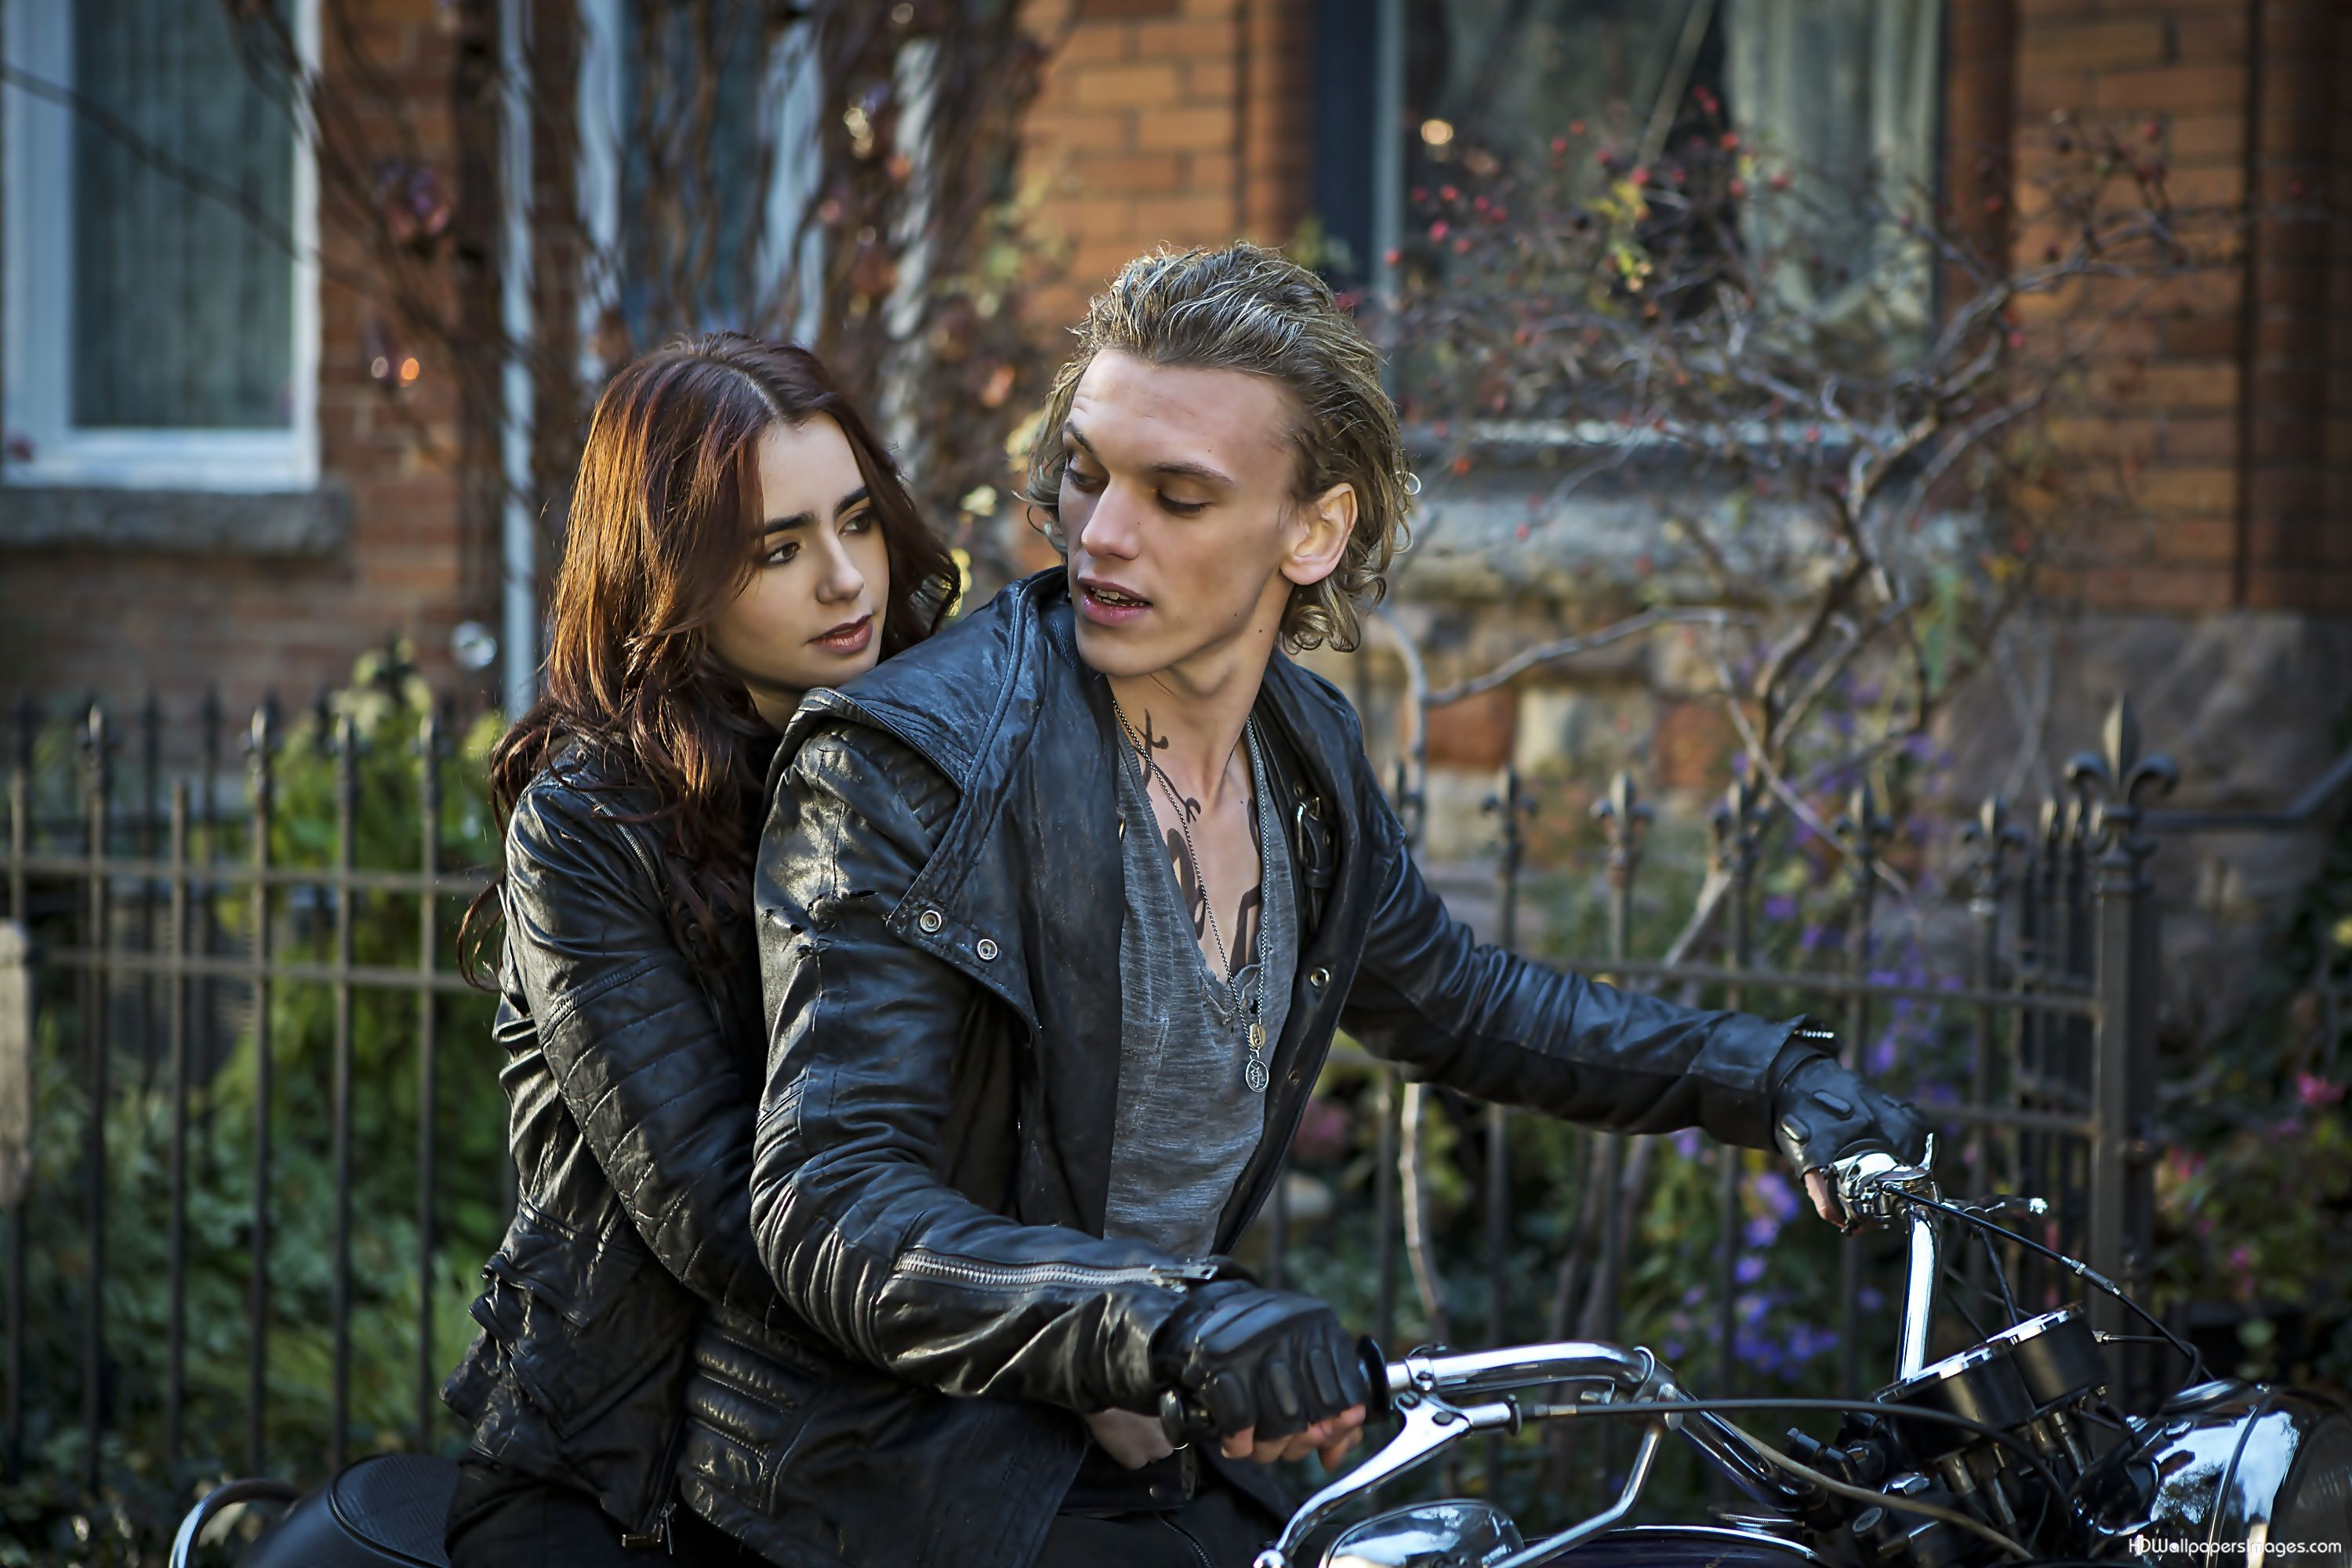 Mortal Instruments City Of Bones The Mortal Instruments To The Bone Movie Clary And Jace